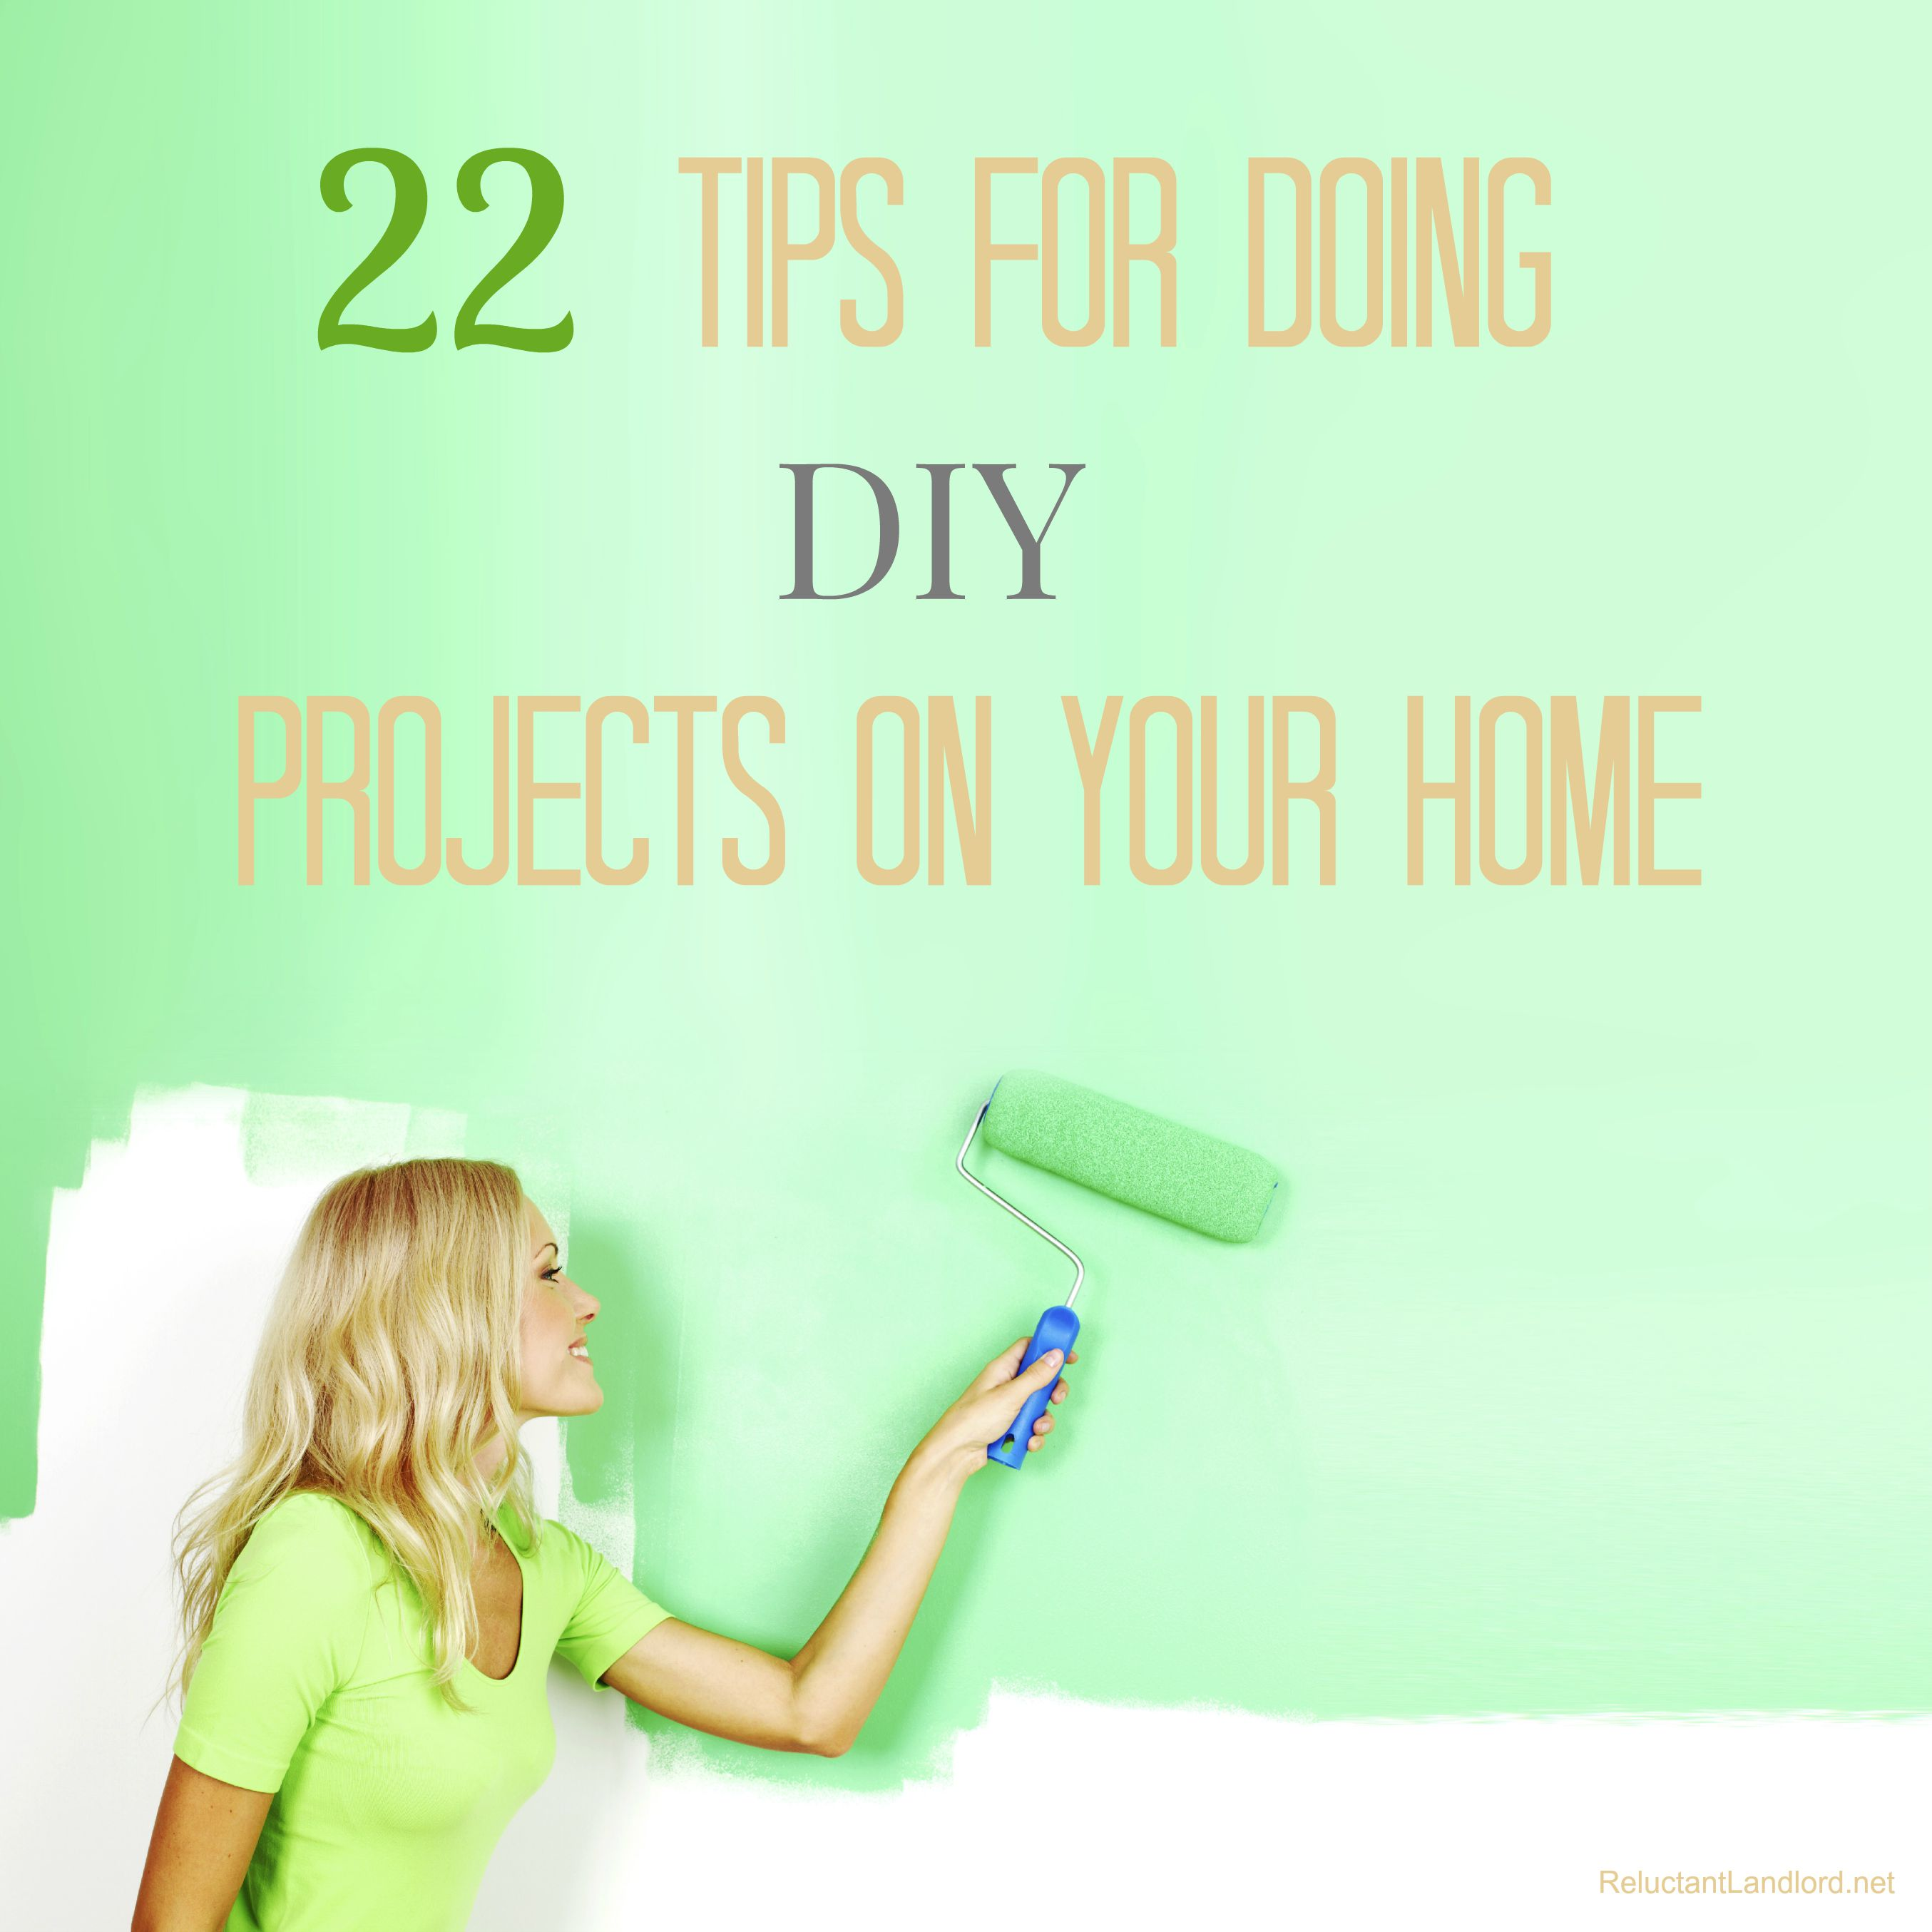 22 Tips for Doing DIY Projects on Your Home